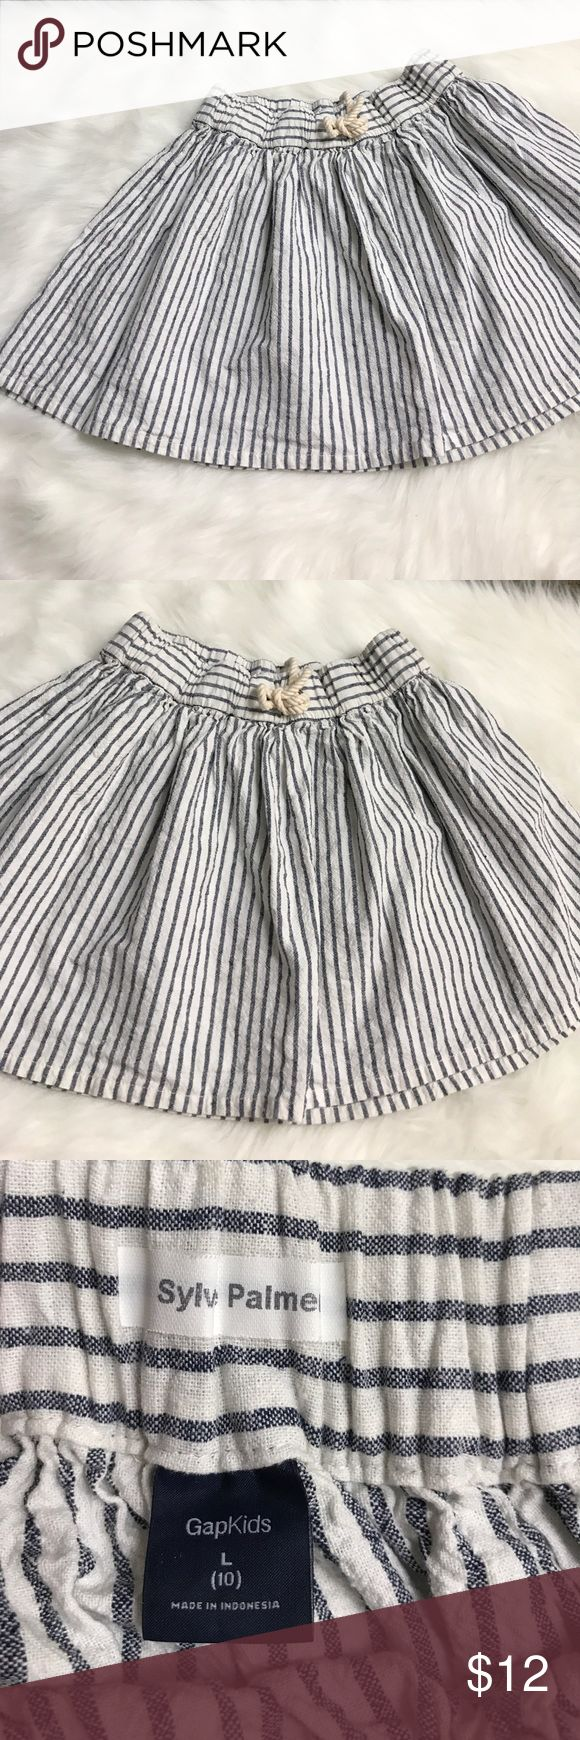 Gap Kids Size 10 Nautical Denim Striped Skirt Gap Kids Brand - Girls Size 10 Navy Blue/White Striped Skirt - excellent condition - FAST SHIPPING! Smoke/pet free home GAP Bottoms Skirts